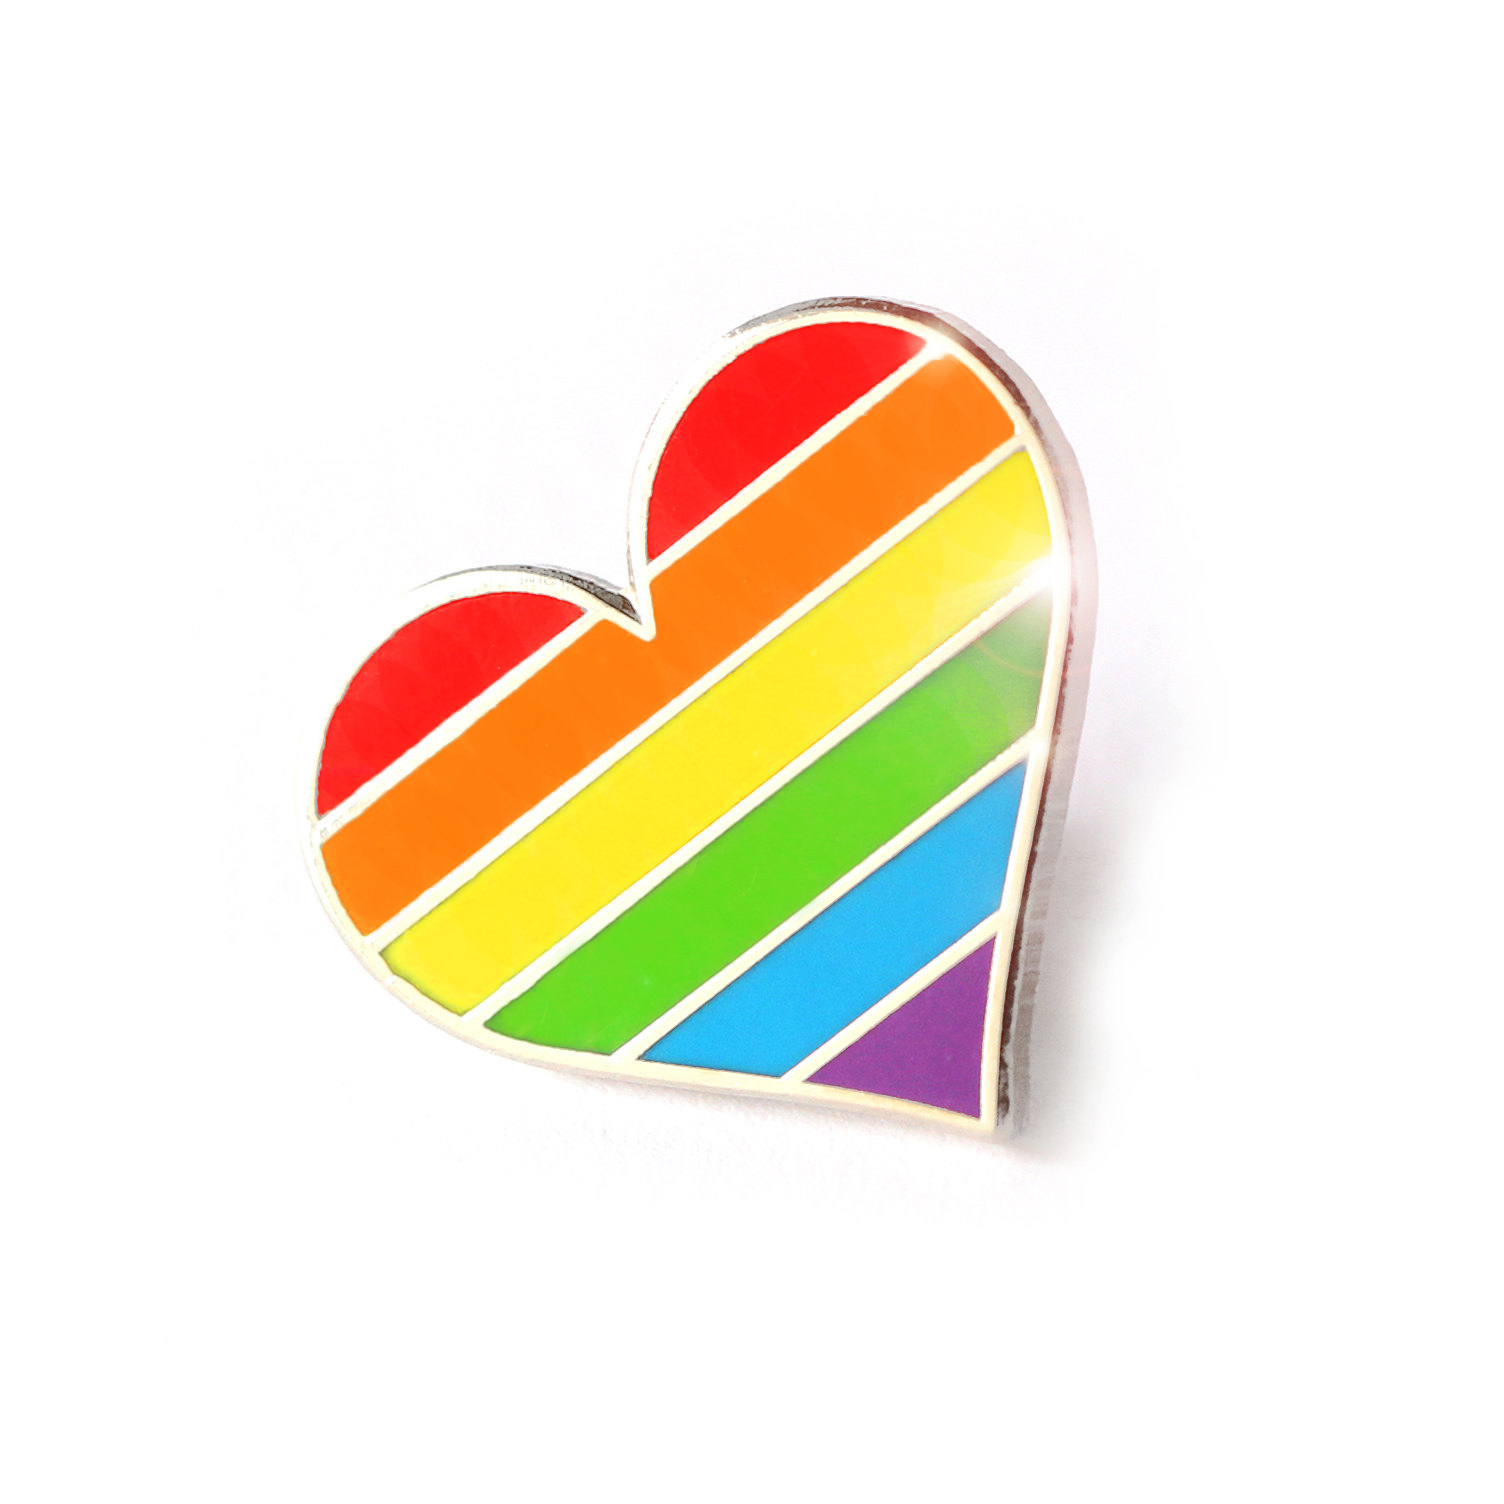 Rainbow pin badge - Its Just a Little Something